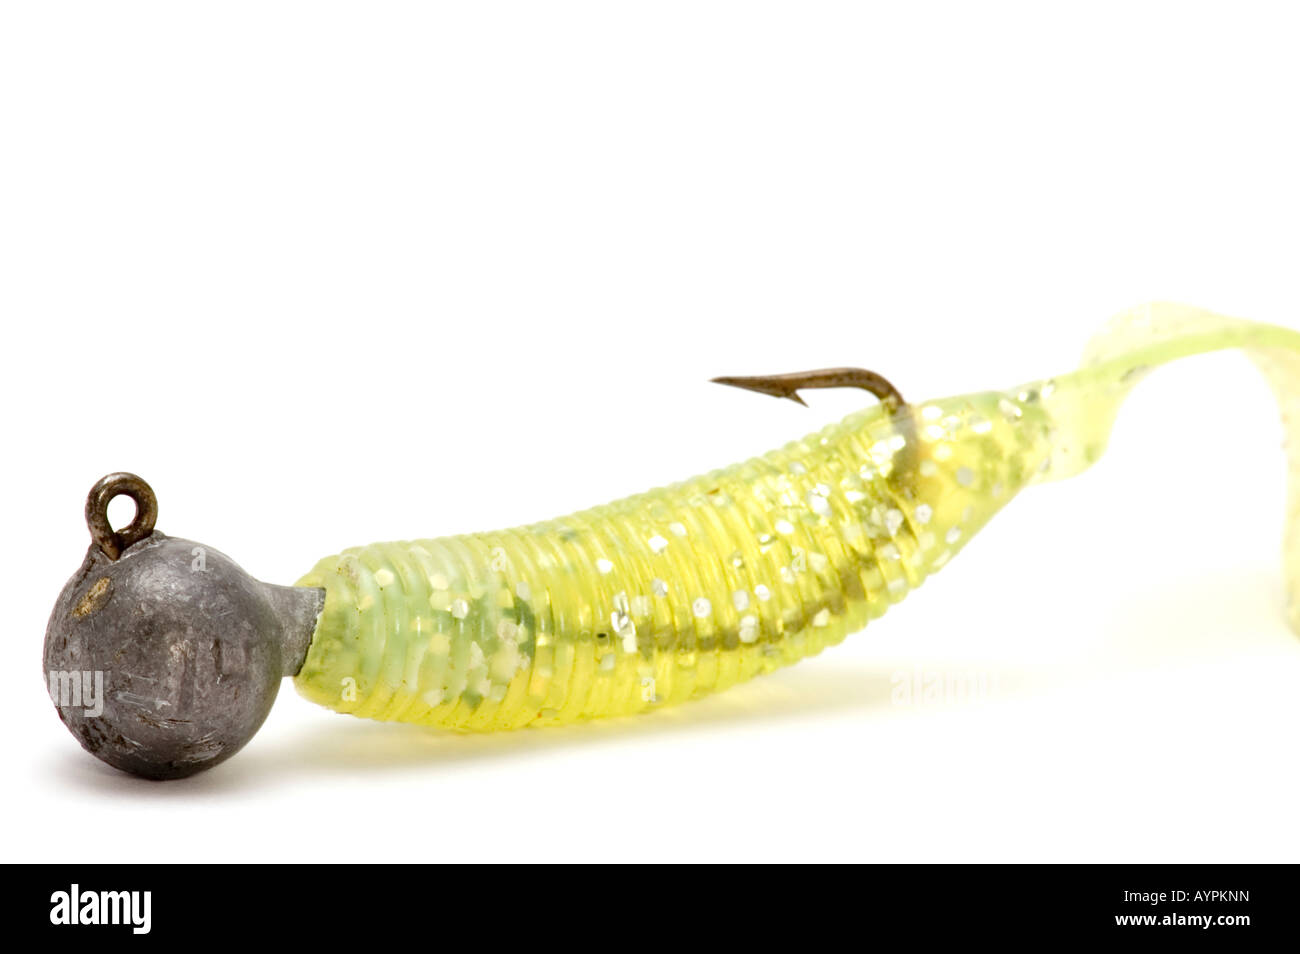 object on white spoon bait with hook - Stock Image